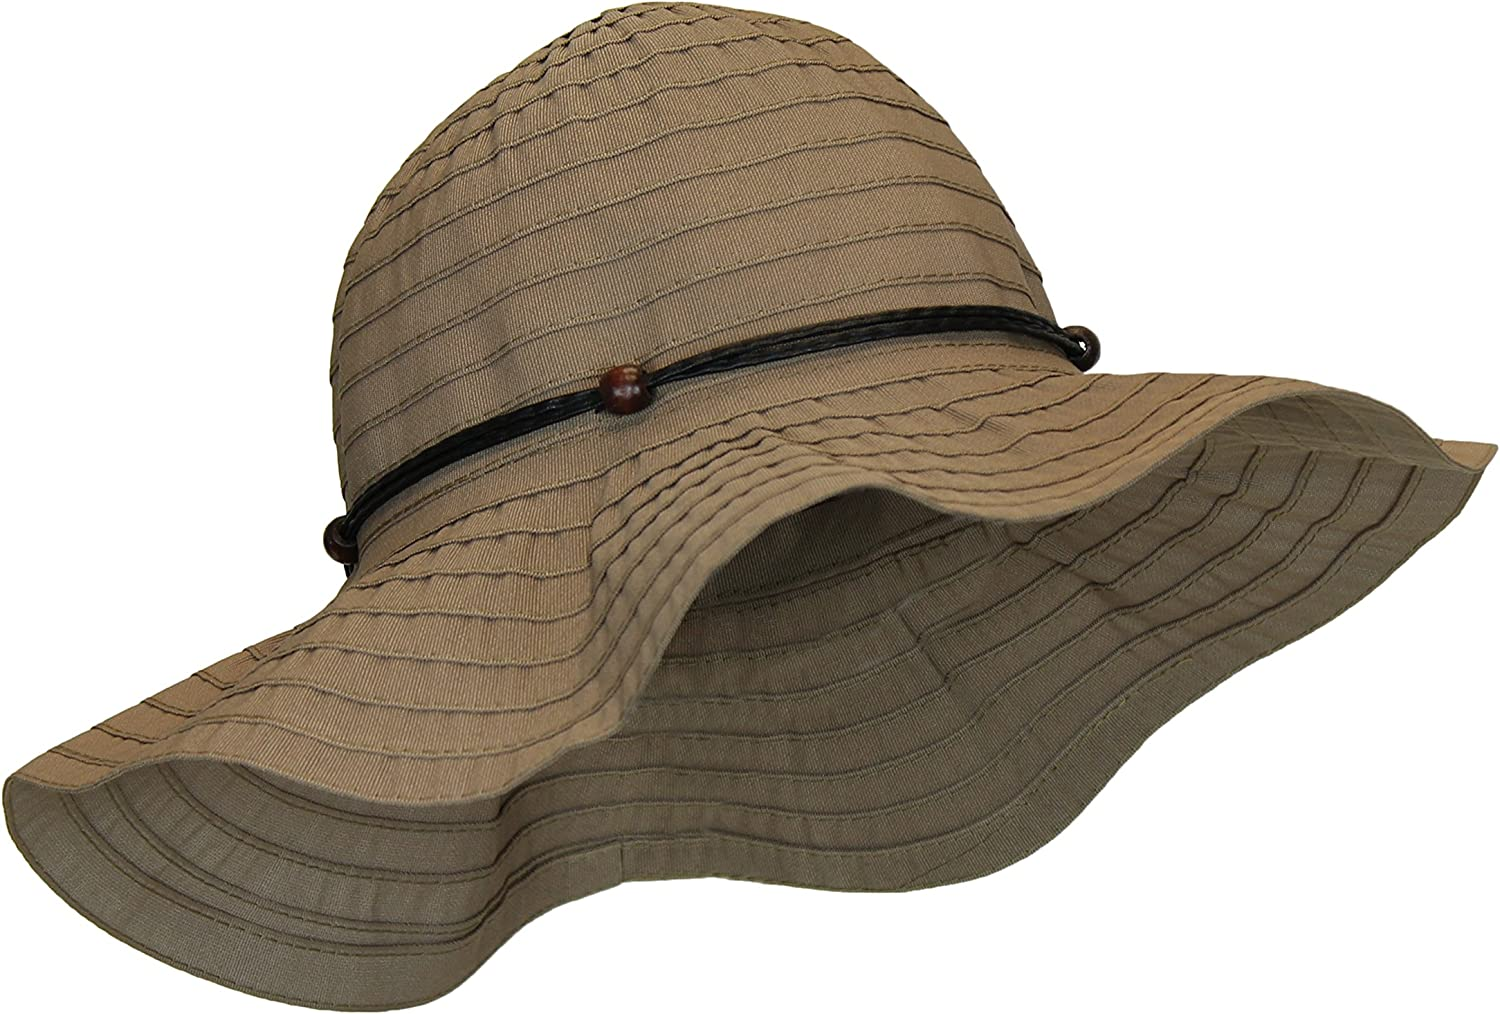 Kallina Women's Summer Hat w/Beads and Leatherette Trim, UPF 50+, Packable/Crushable